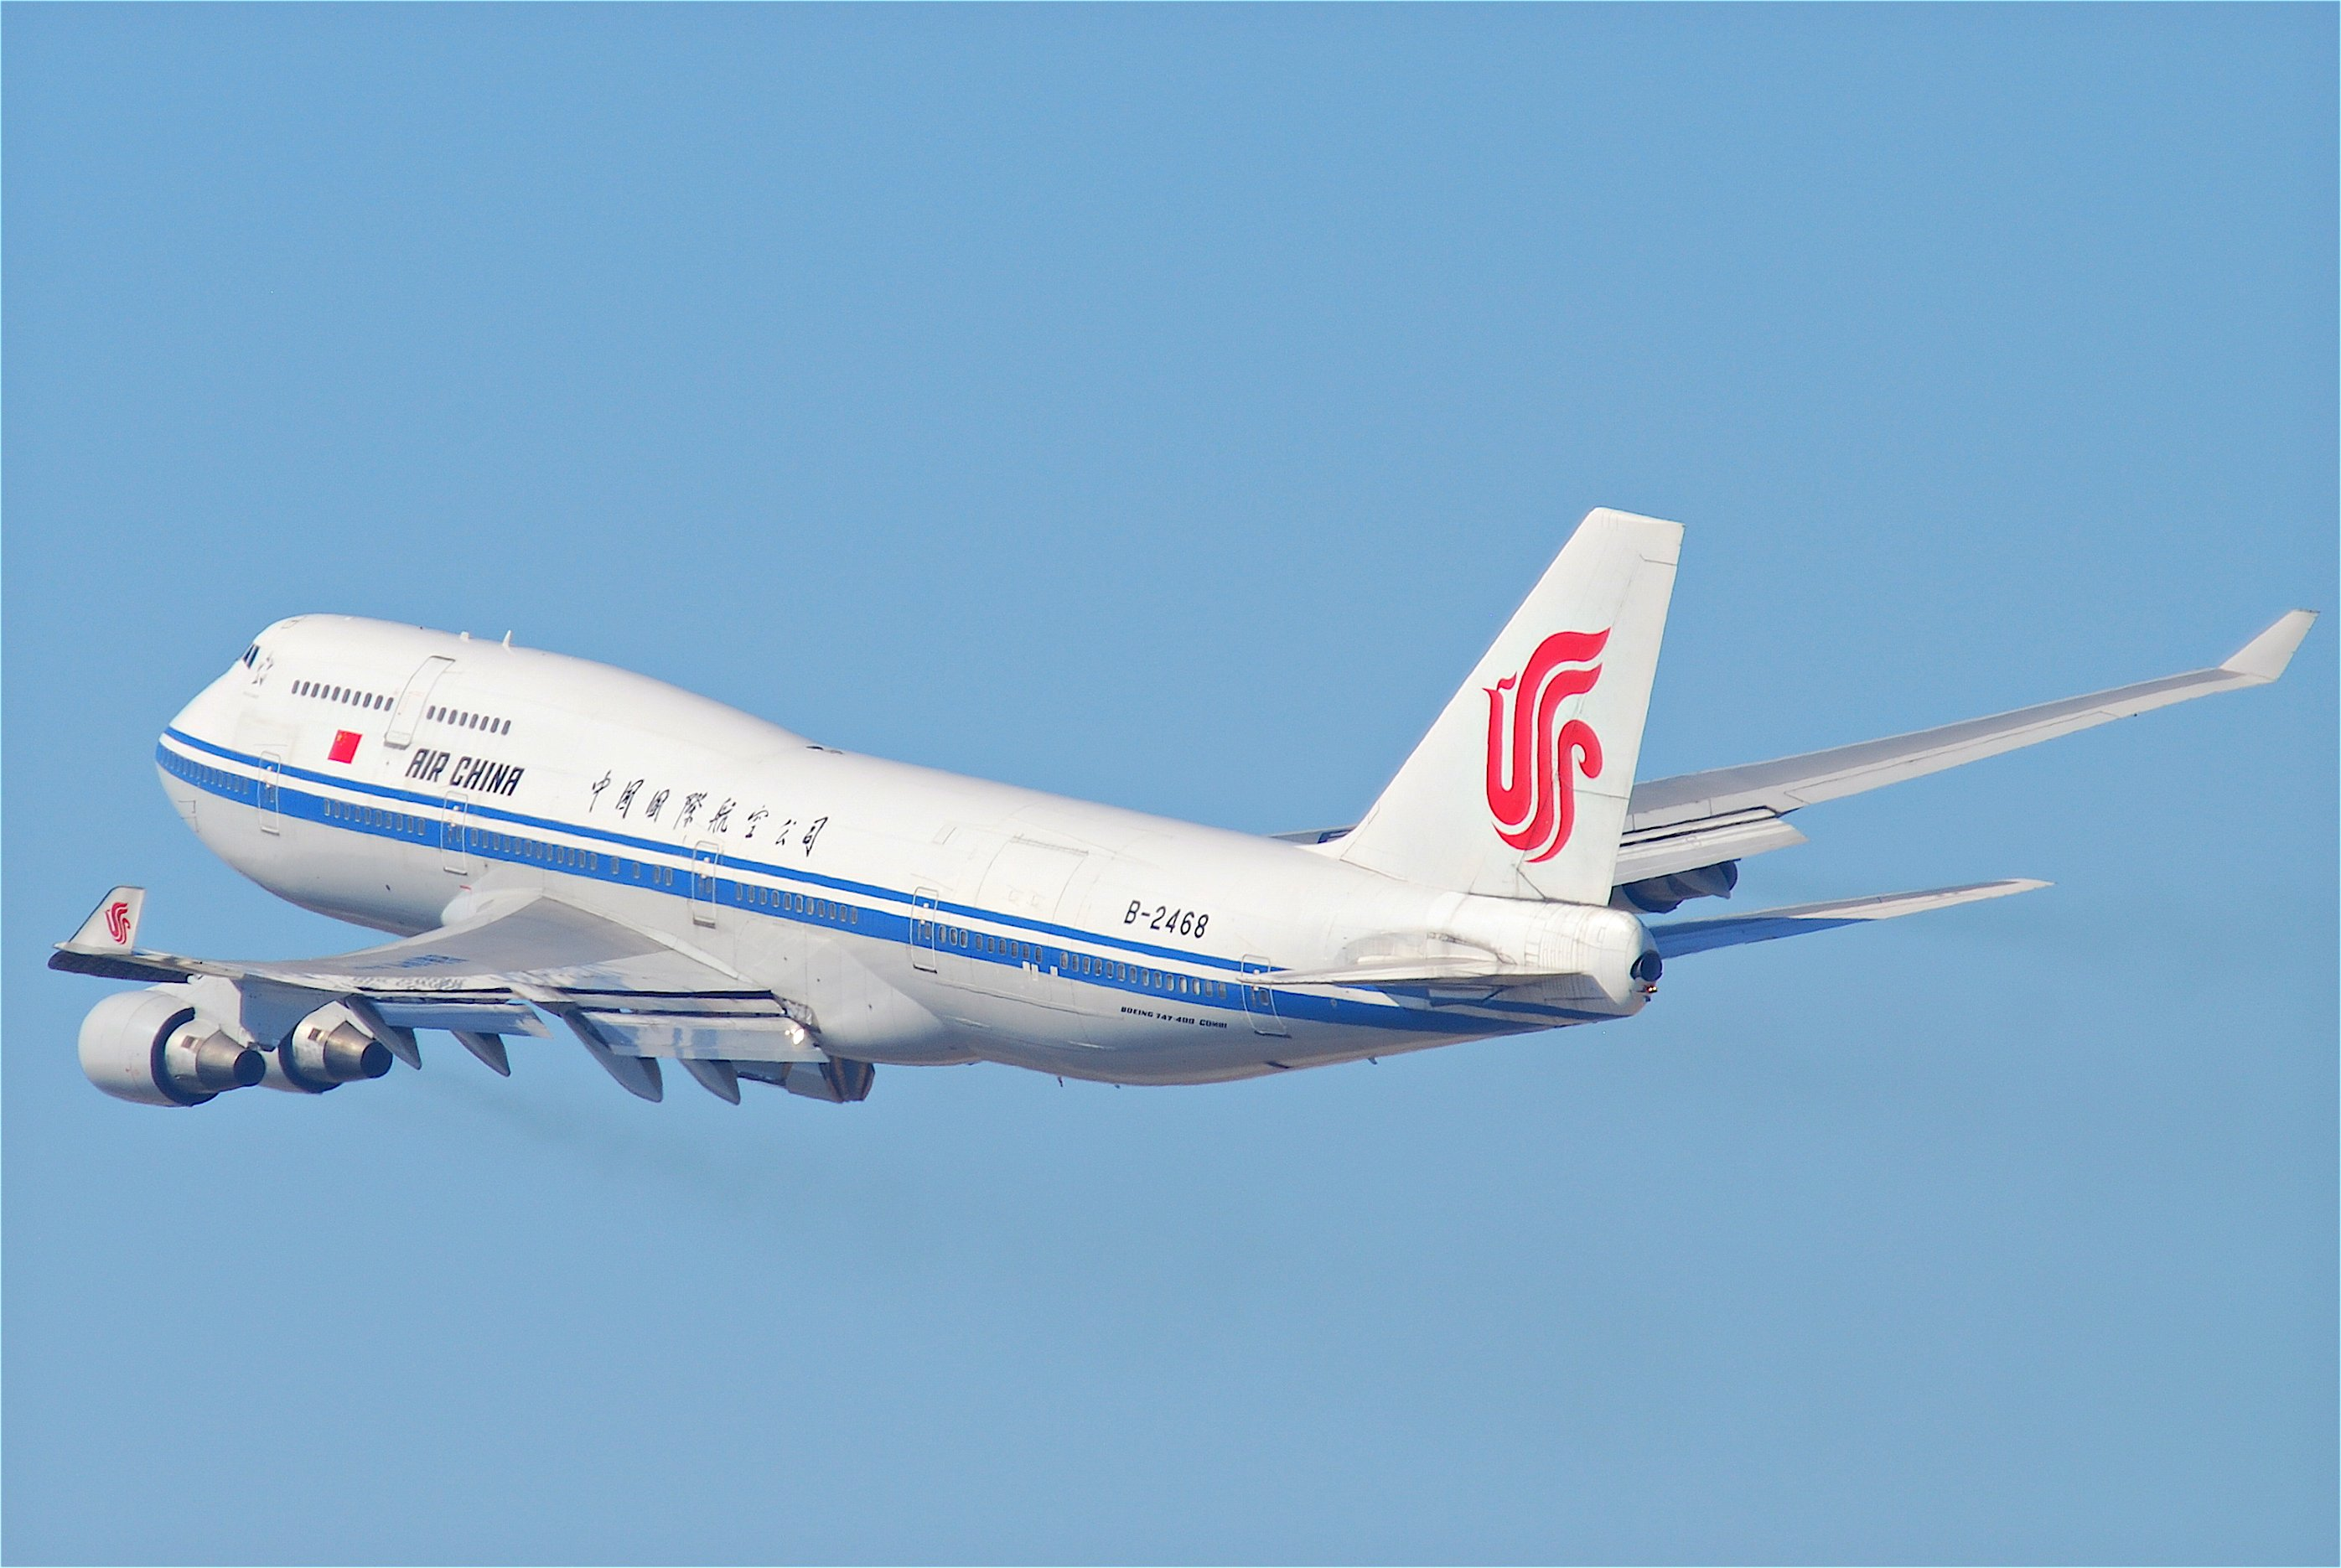 File:Air China Boeing 747-400; [email protected];11.10